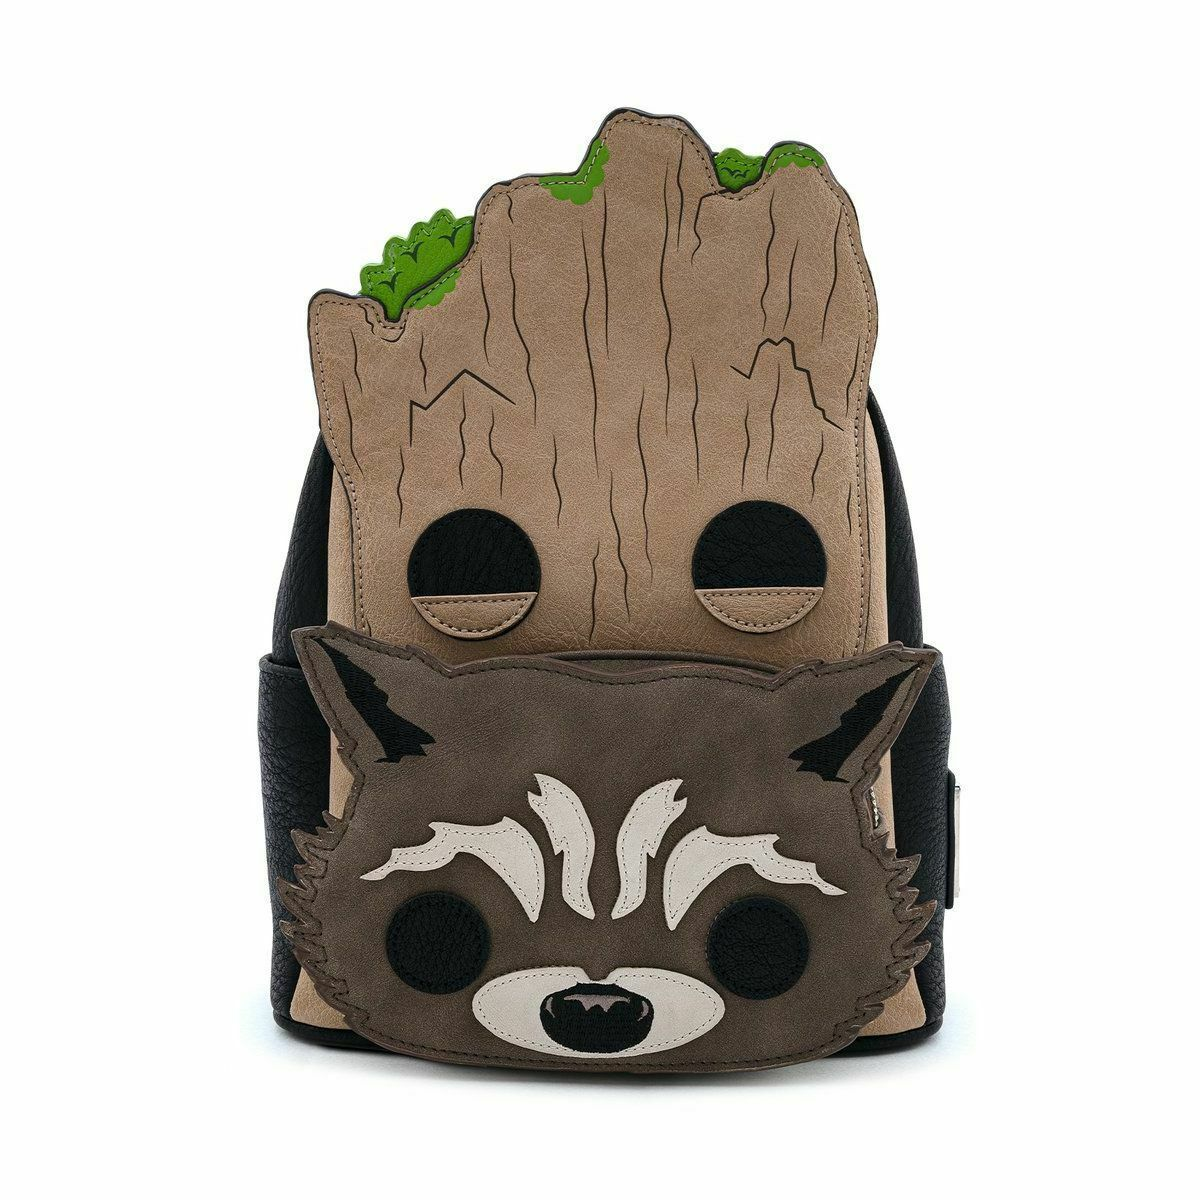 Pop by Loungefly Marvel GOTG Groot and Rocket Cosplay Mini Backpack Racksack Bag - $80.95